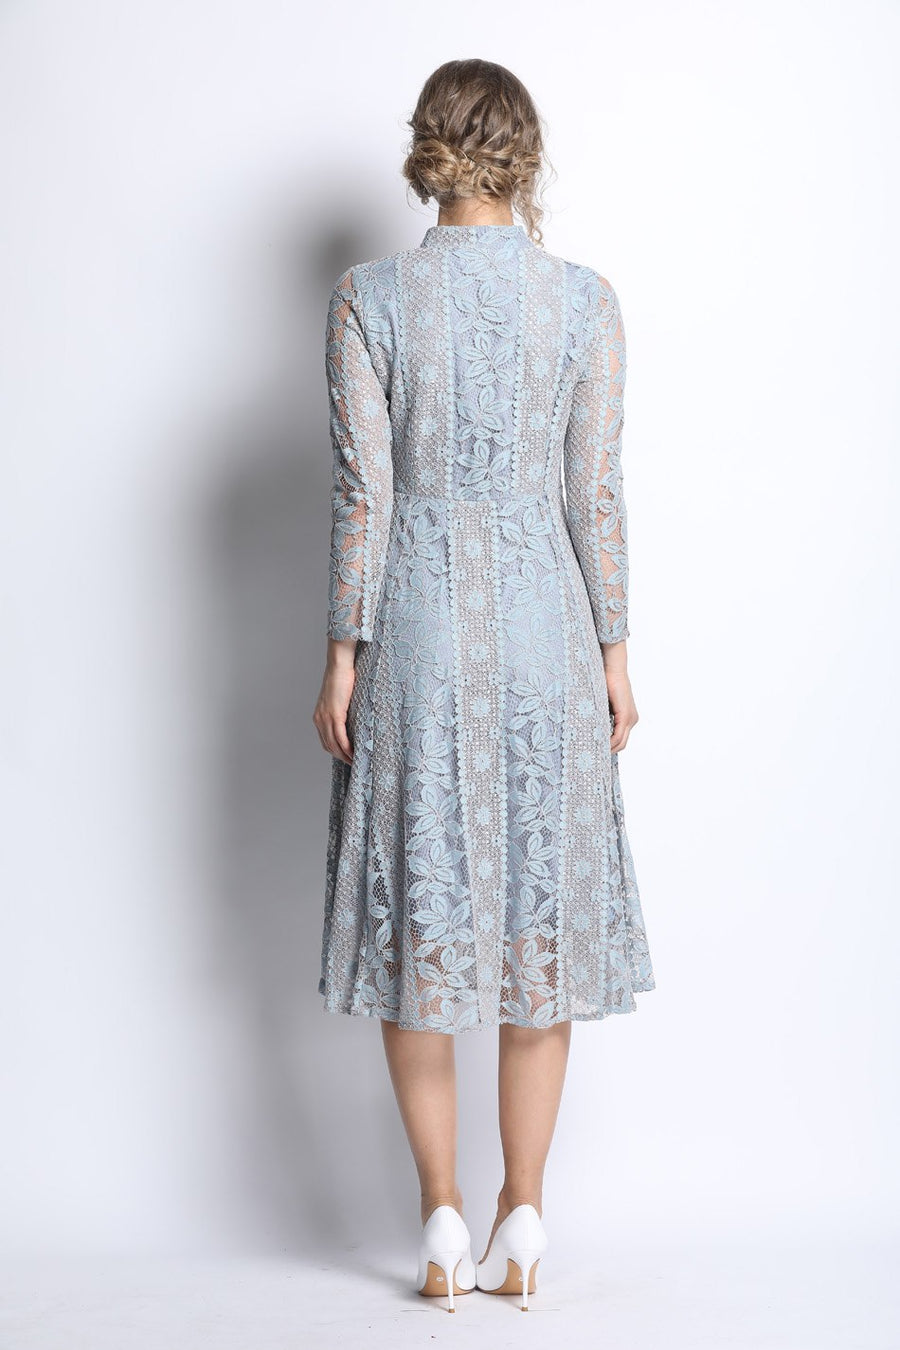 Light Blue Lace Hollow Out Slim Midi Dress with Peral Buttons Front